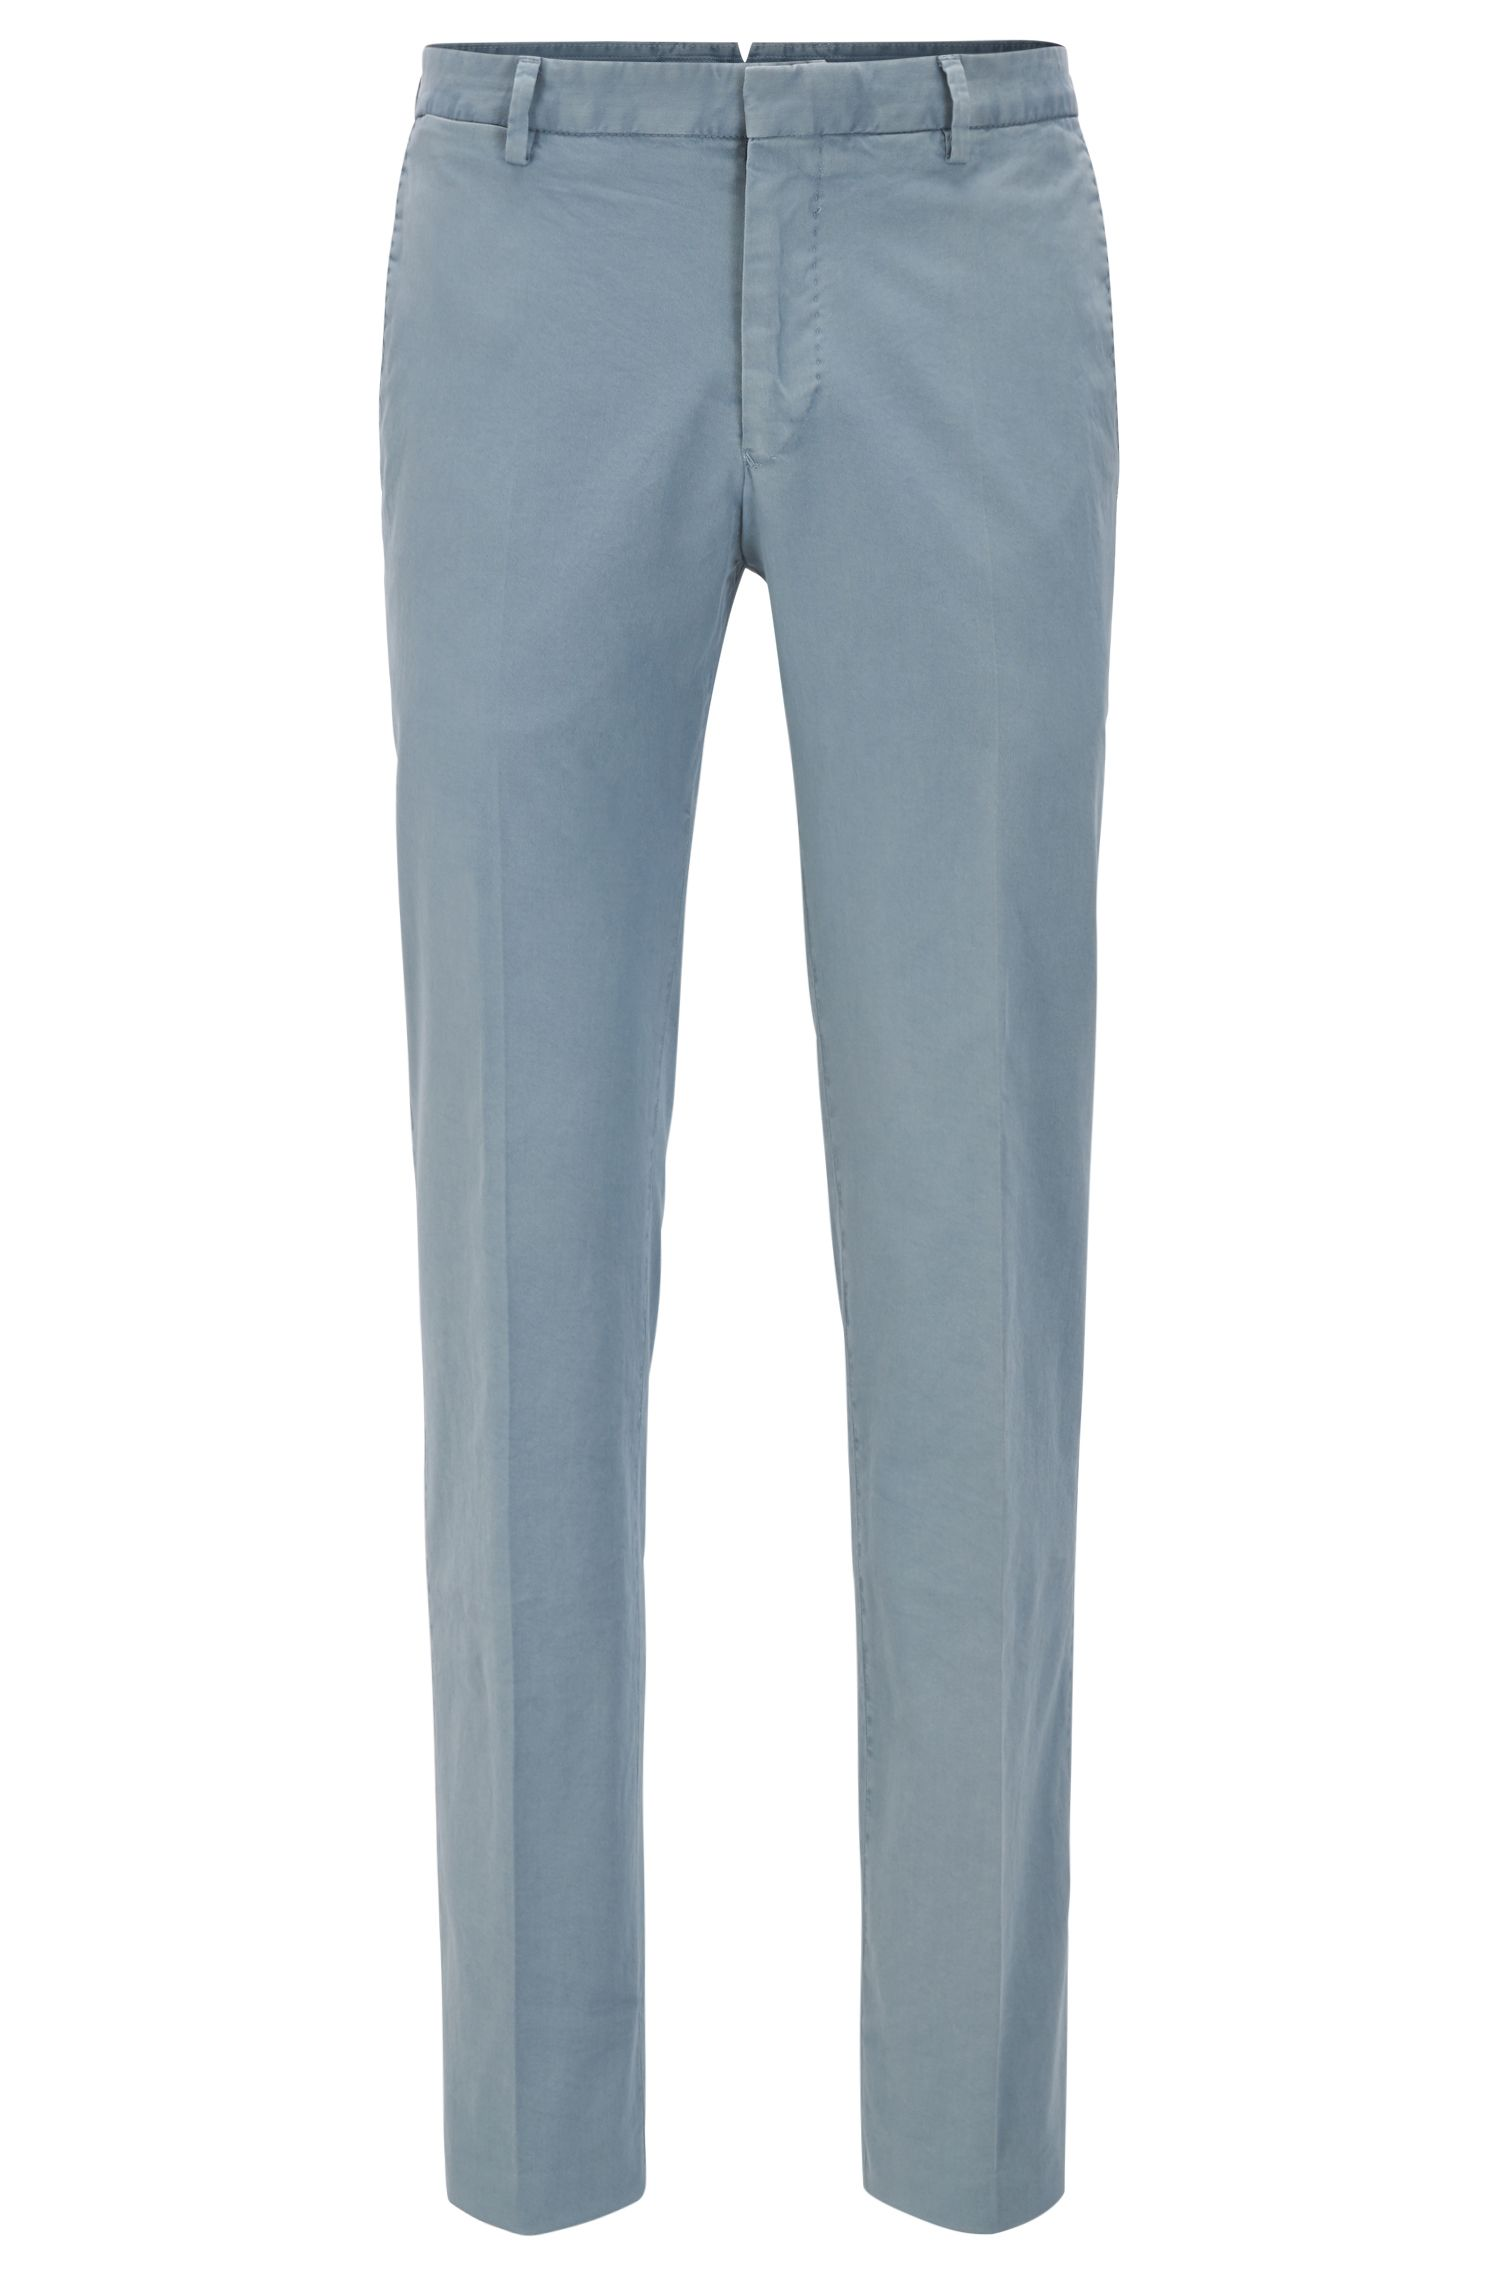 Garment-Dyed Stretch Cotton Suiting Pant, Slim Fit | Barlow D, Open Grey